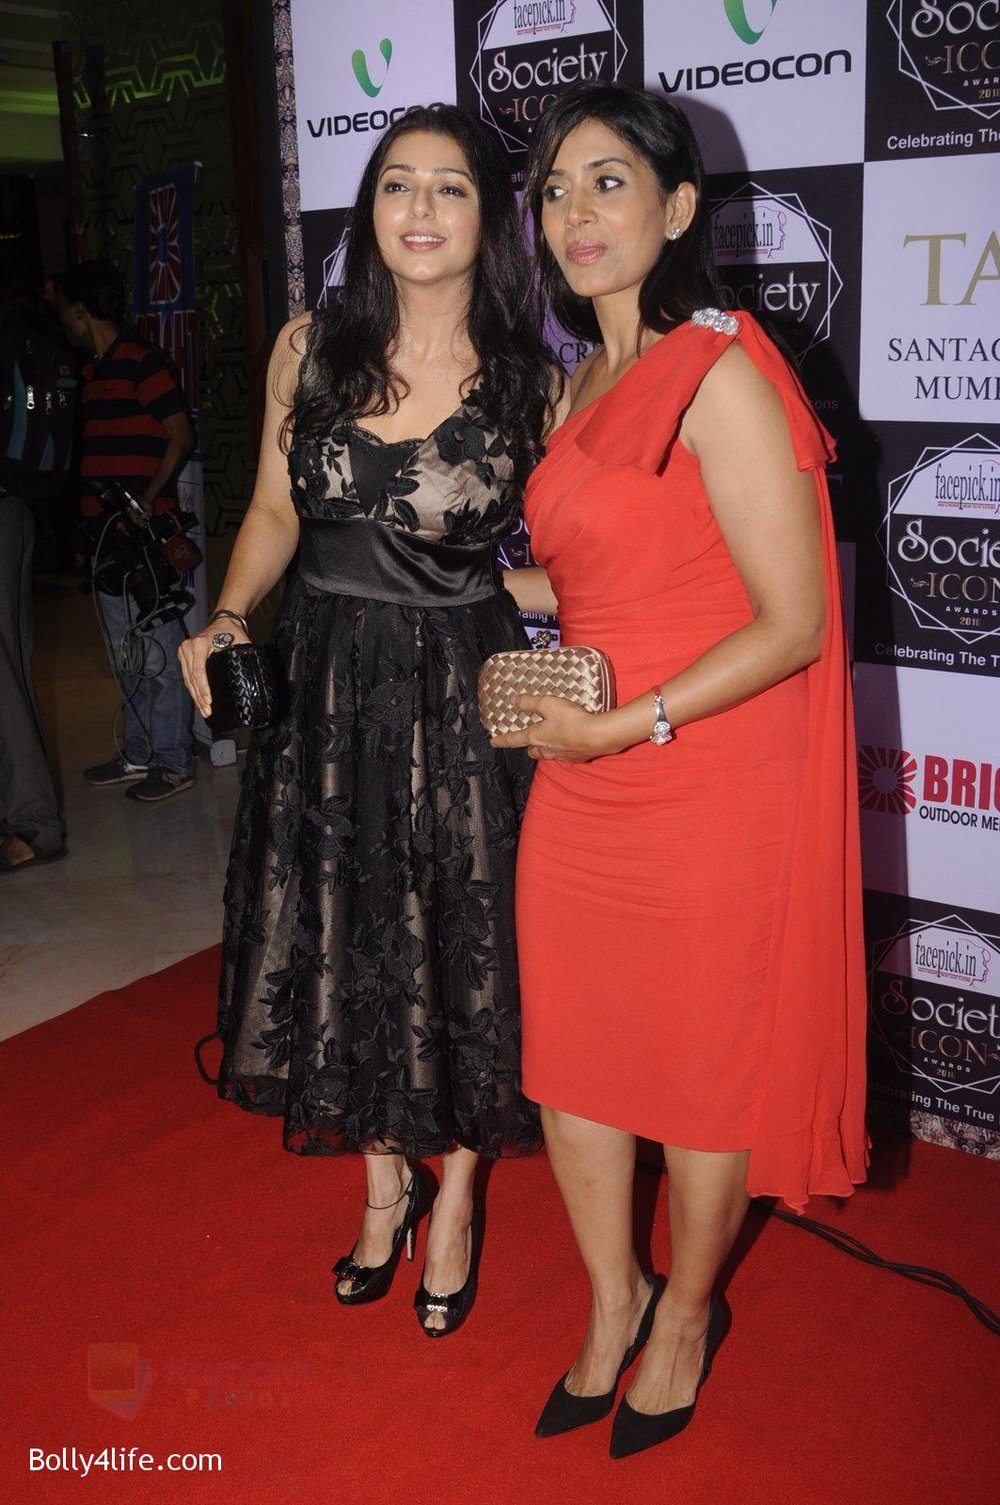 Sonali-Kulkarni-Bhumika-Chawla-at-Society-Icon-Awards-on-2nd-Oct-2016-38.jpg